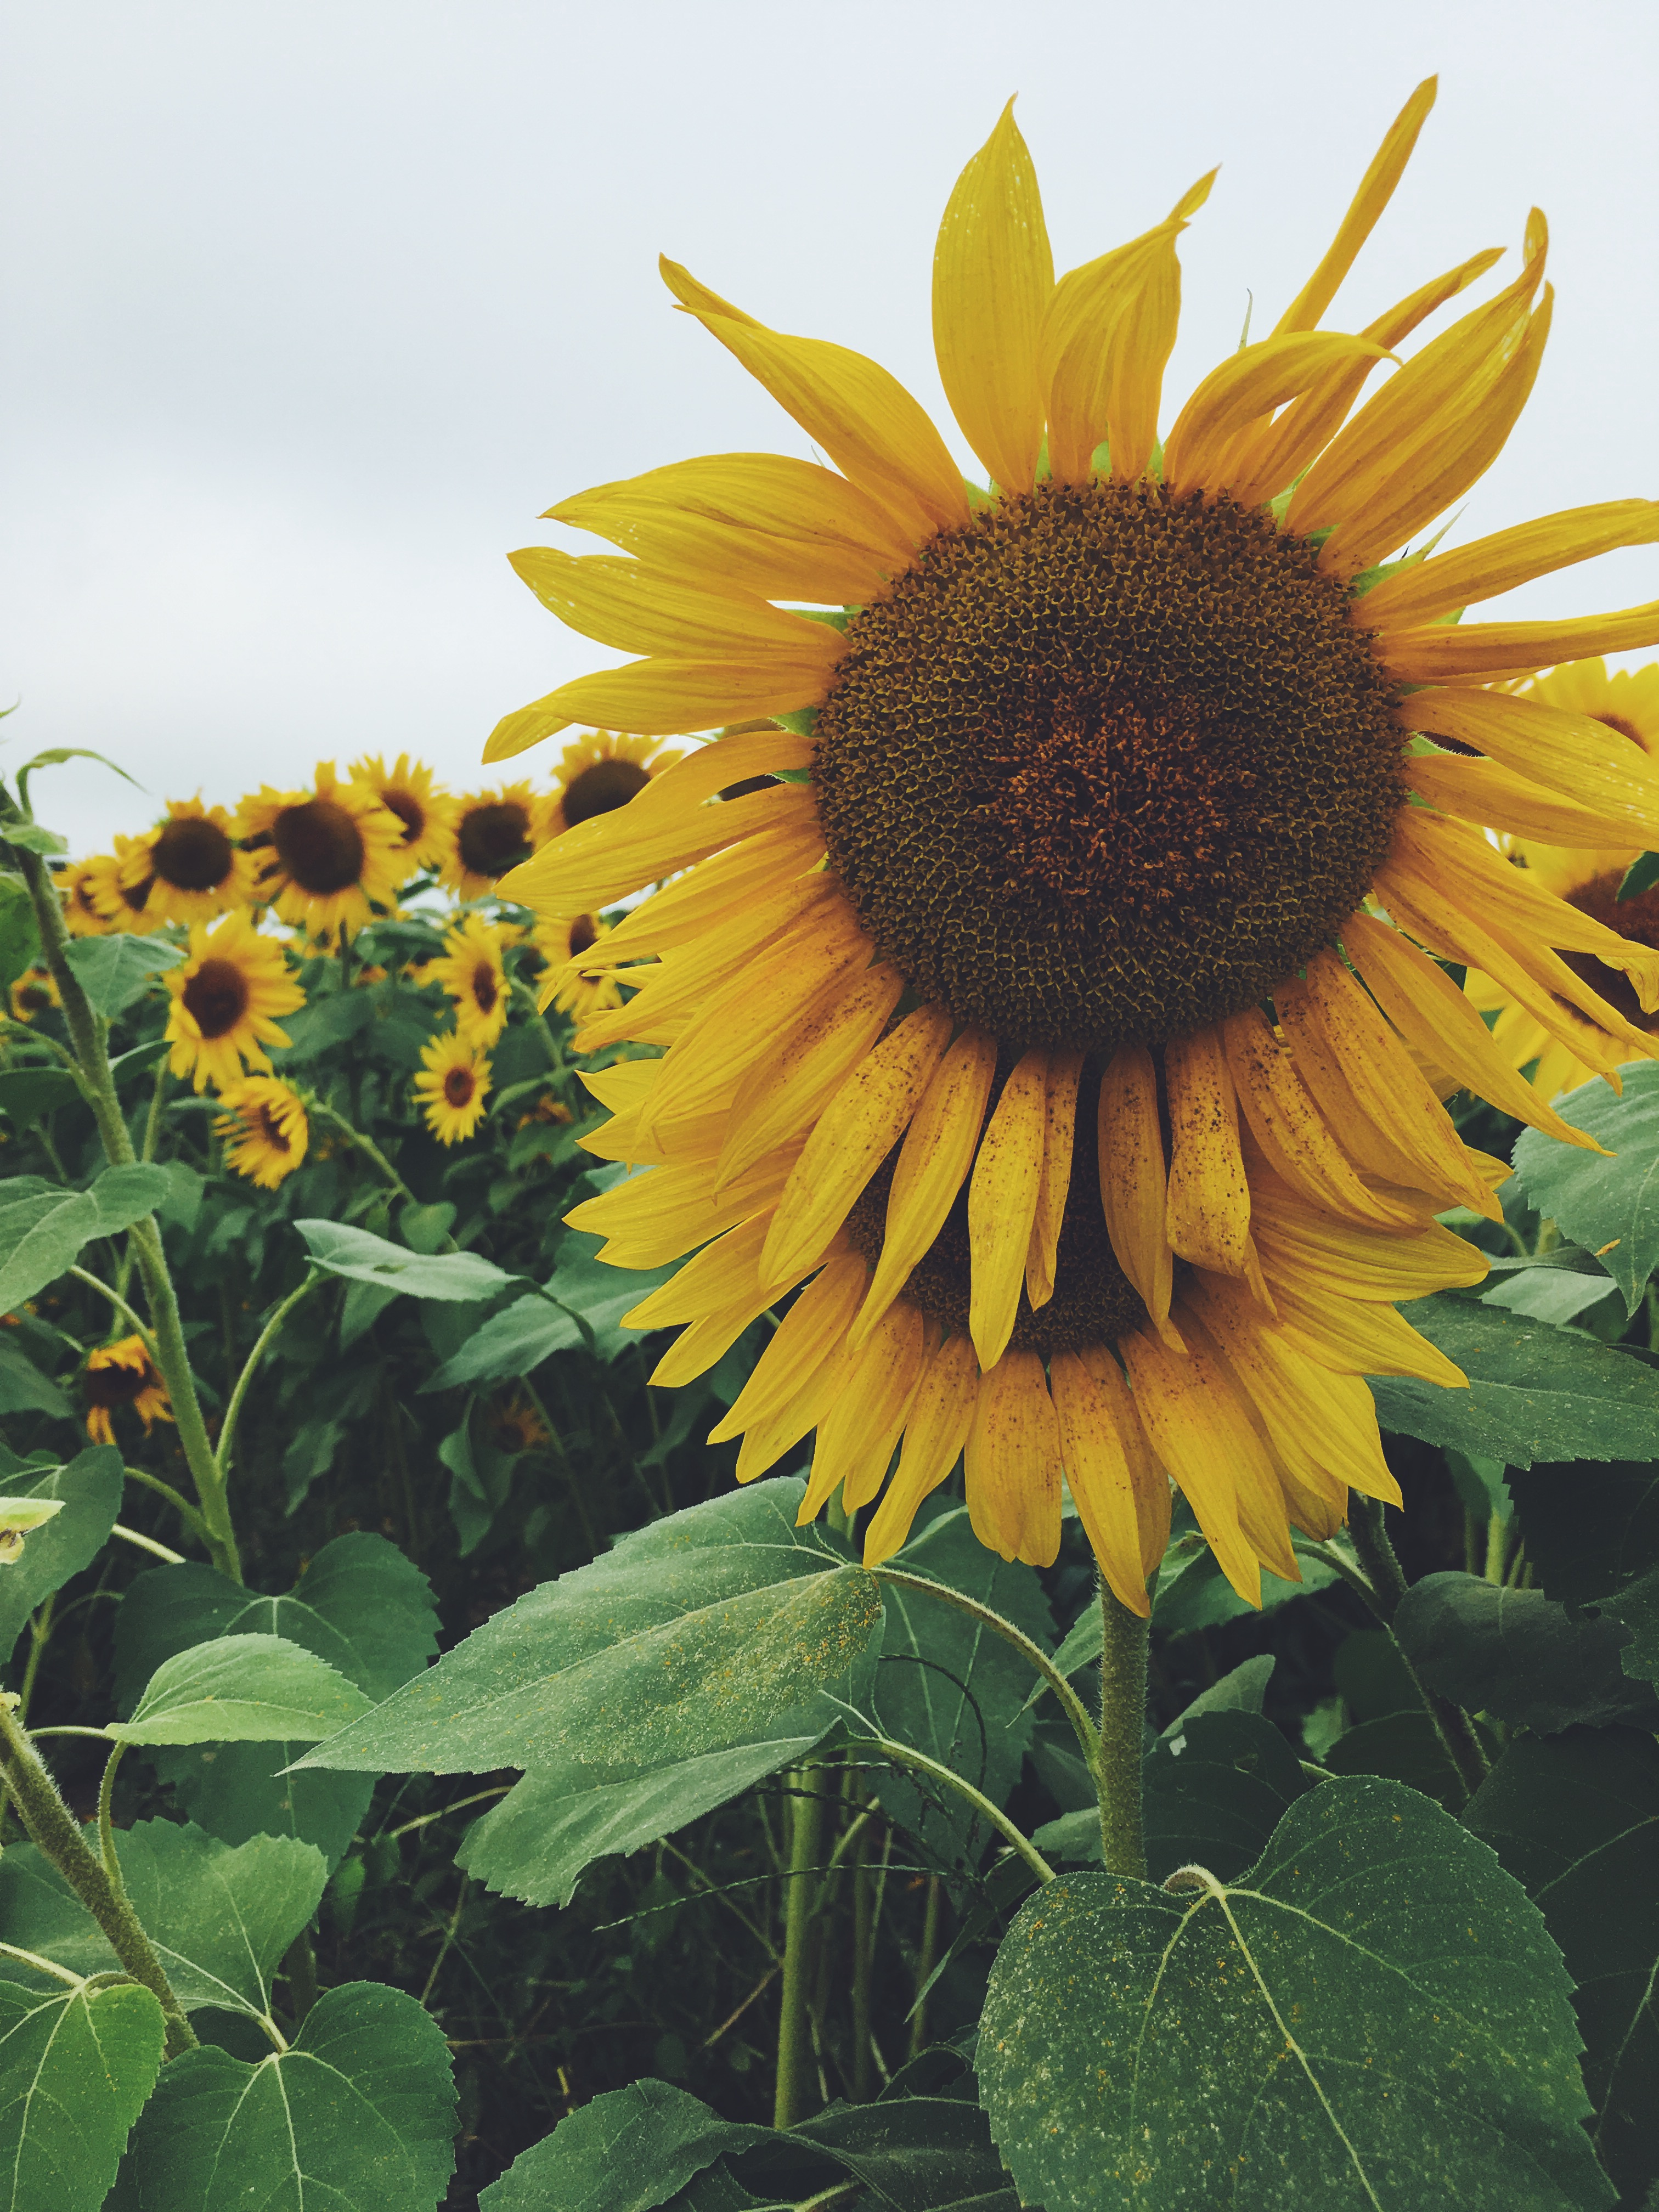 Colby Farm Sunflower Field with Marleylilly